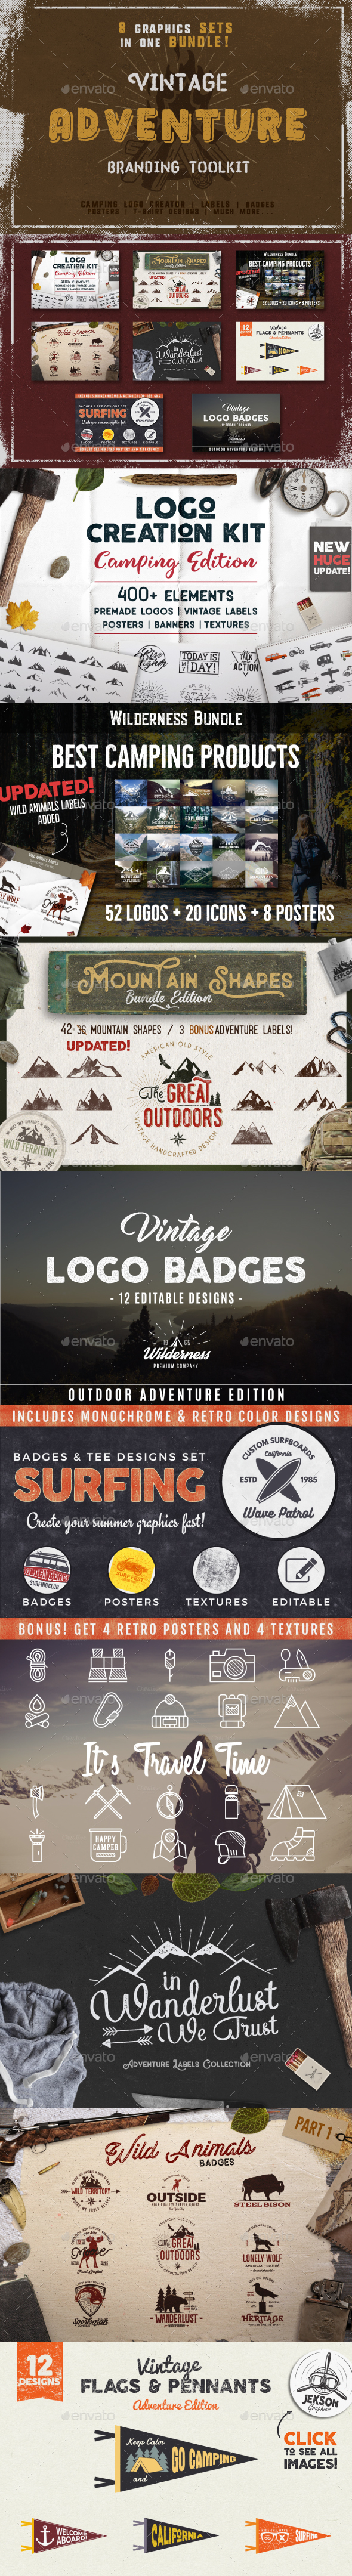 Vintage Adventure Branding Toolkit - Badges & Stickers Web Elements